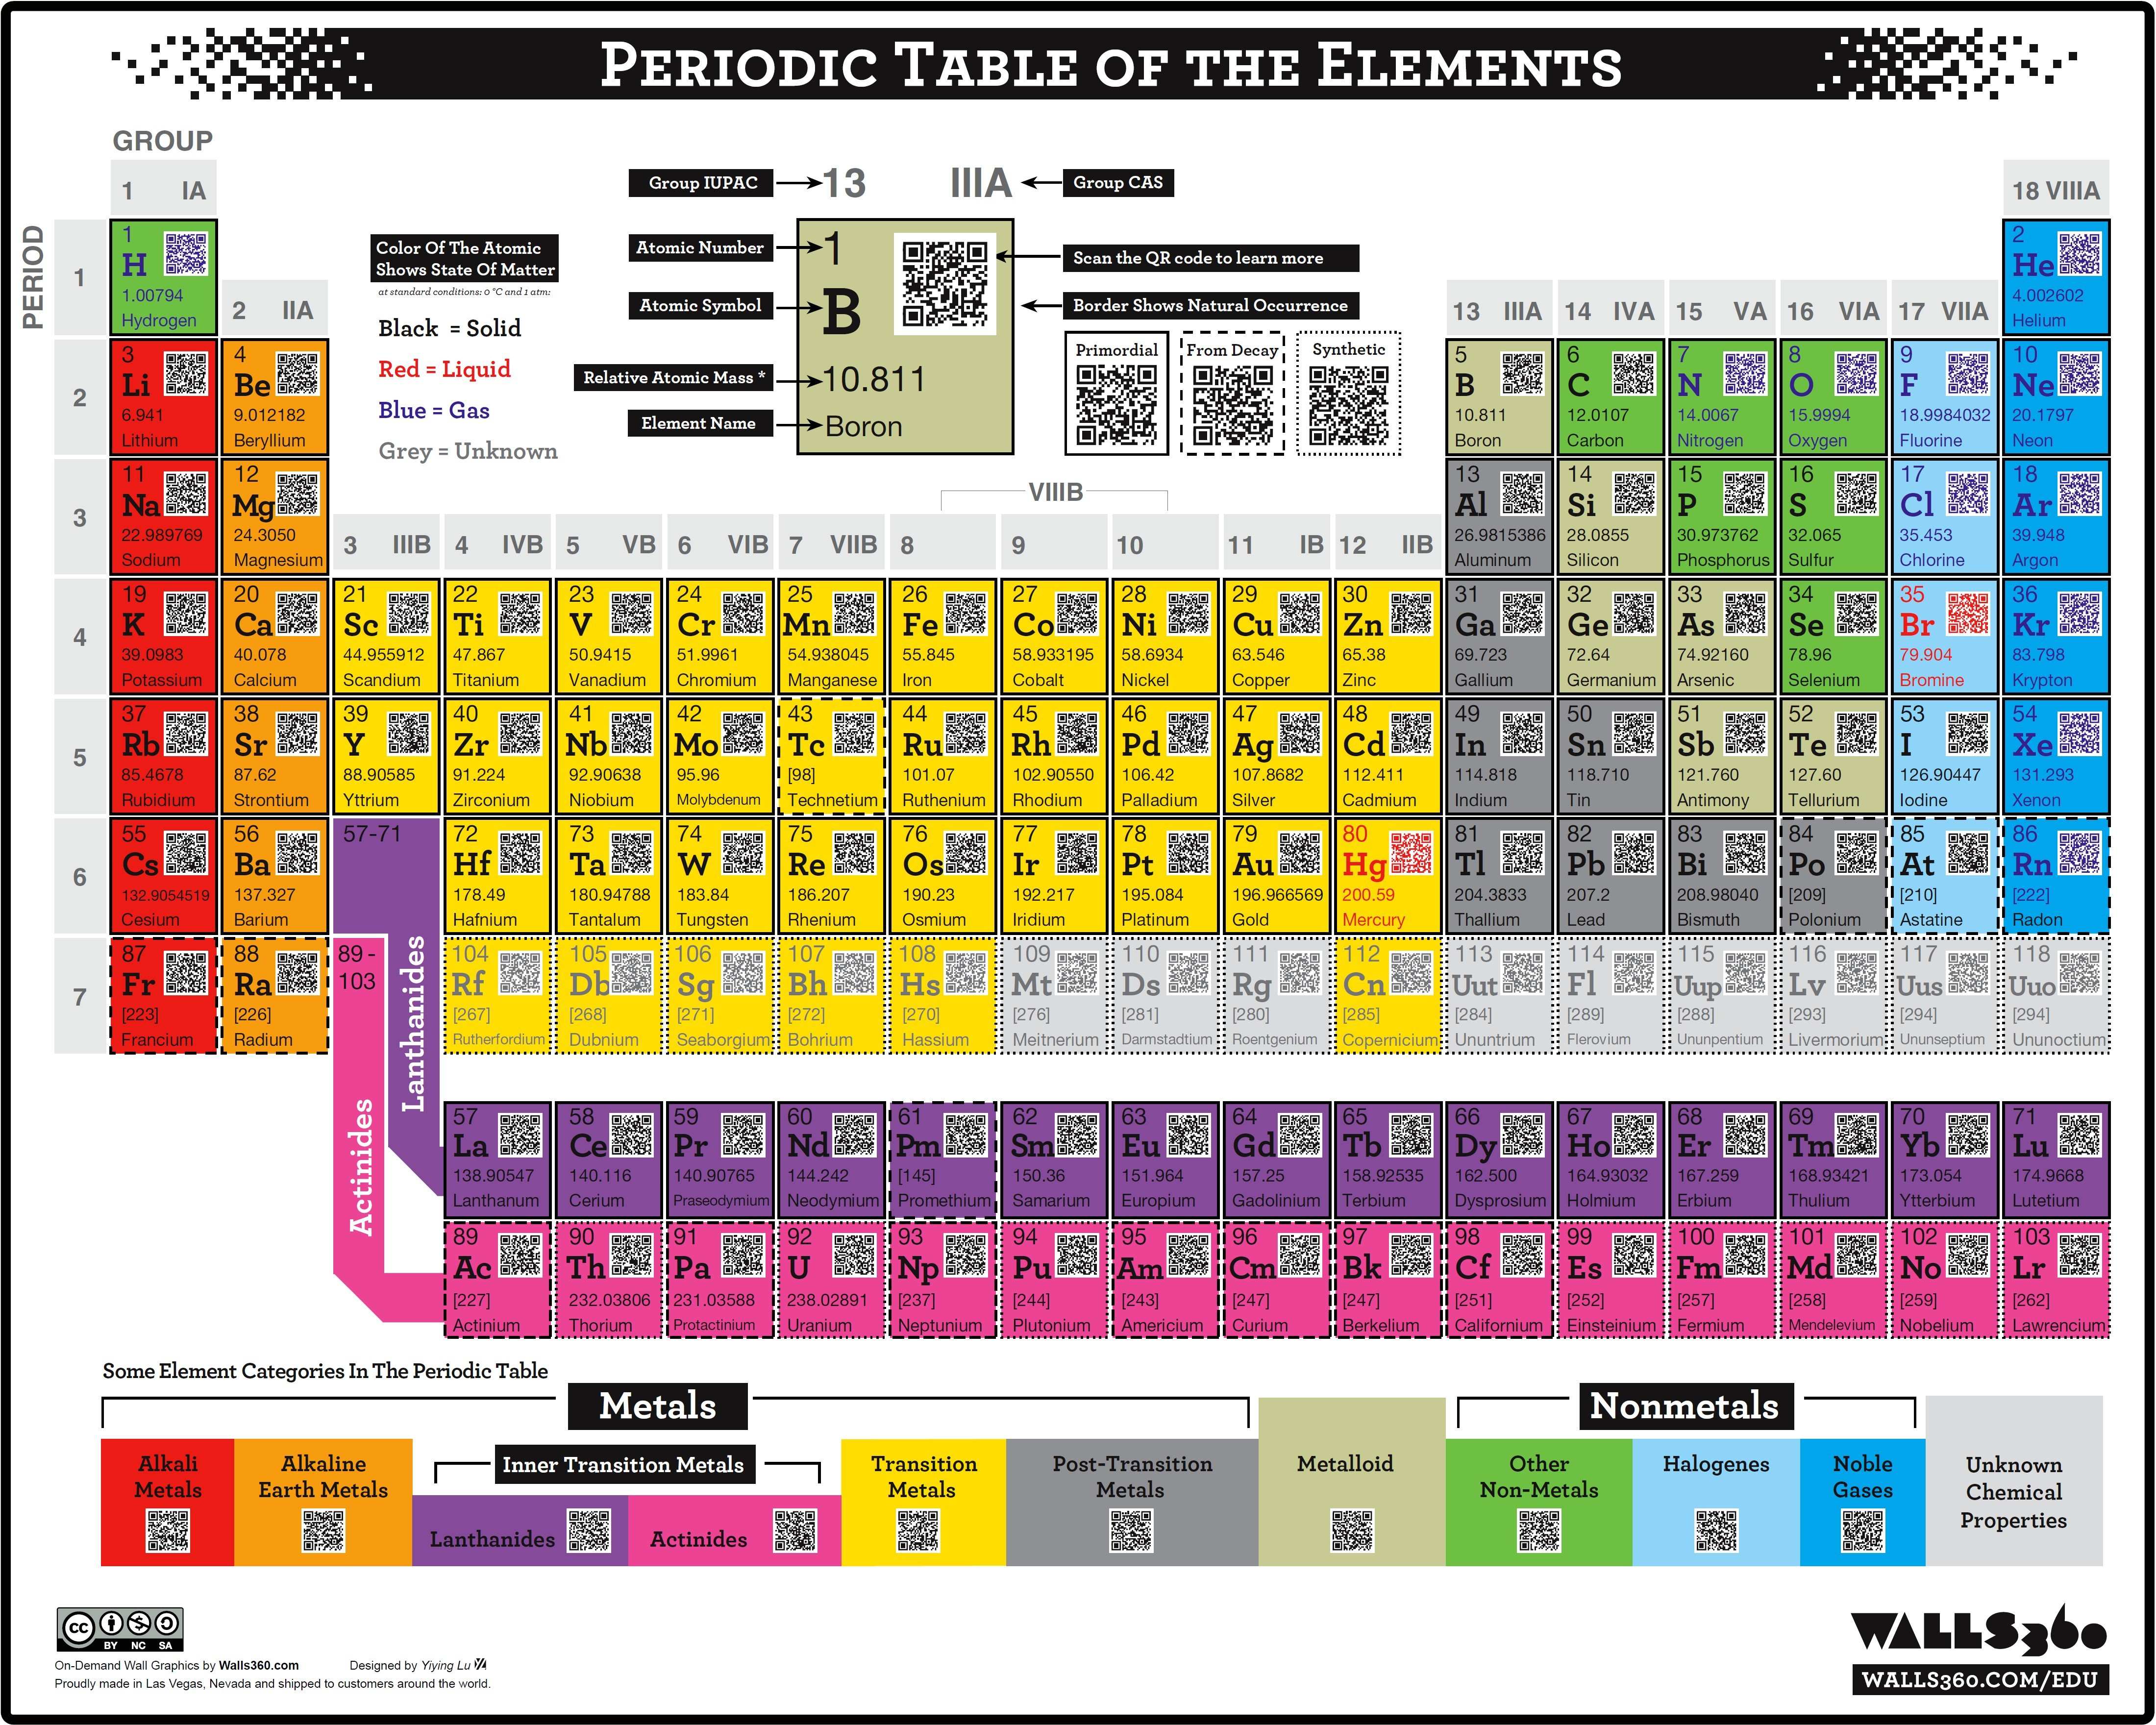 Printable periodic table of elements with everything labeled periodic table of element pdf brokeasshome printable periodic table of elements with everything labeled pdf gamestrikefo gamestrikefo Image collections